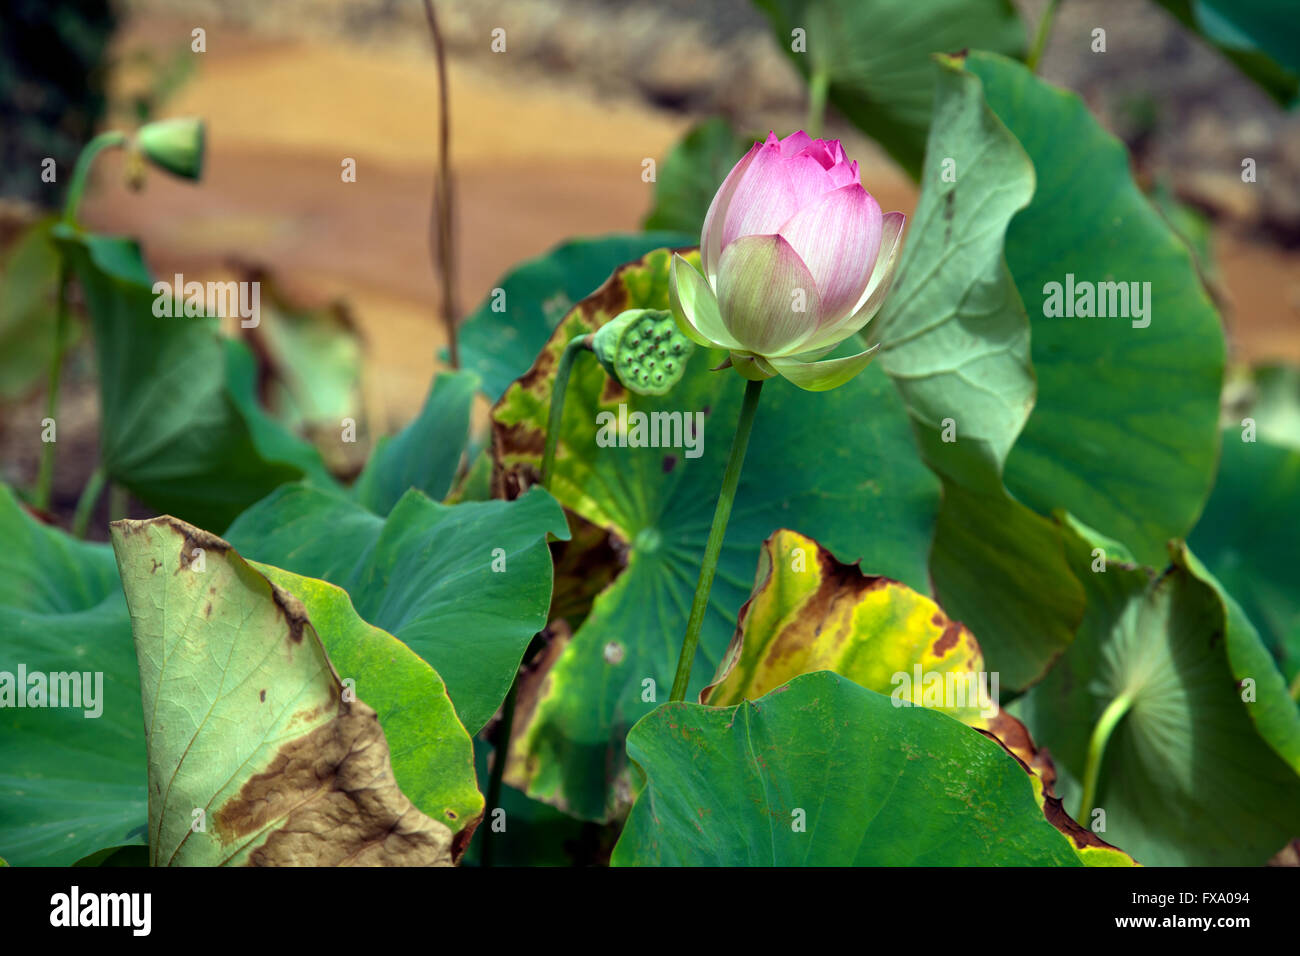 Closed Lotus Flower Stock Photos Closed Lotus Flower Stock Images